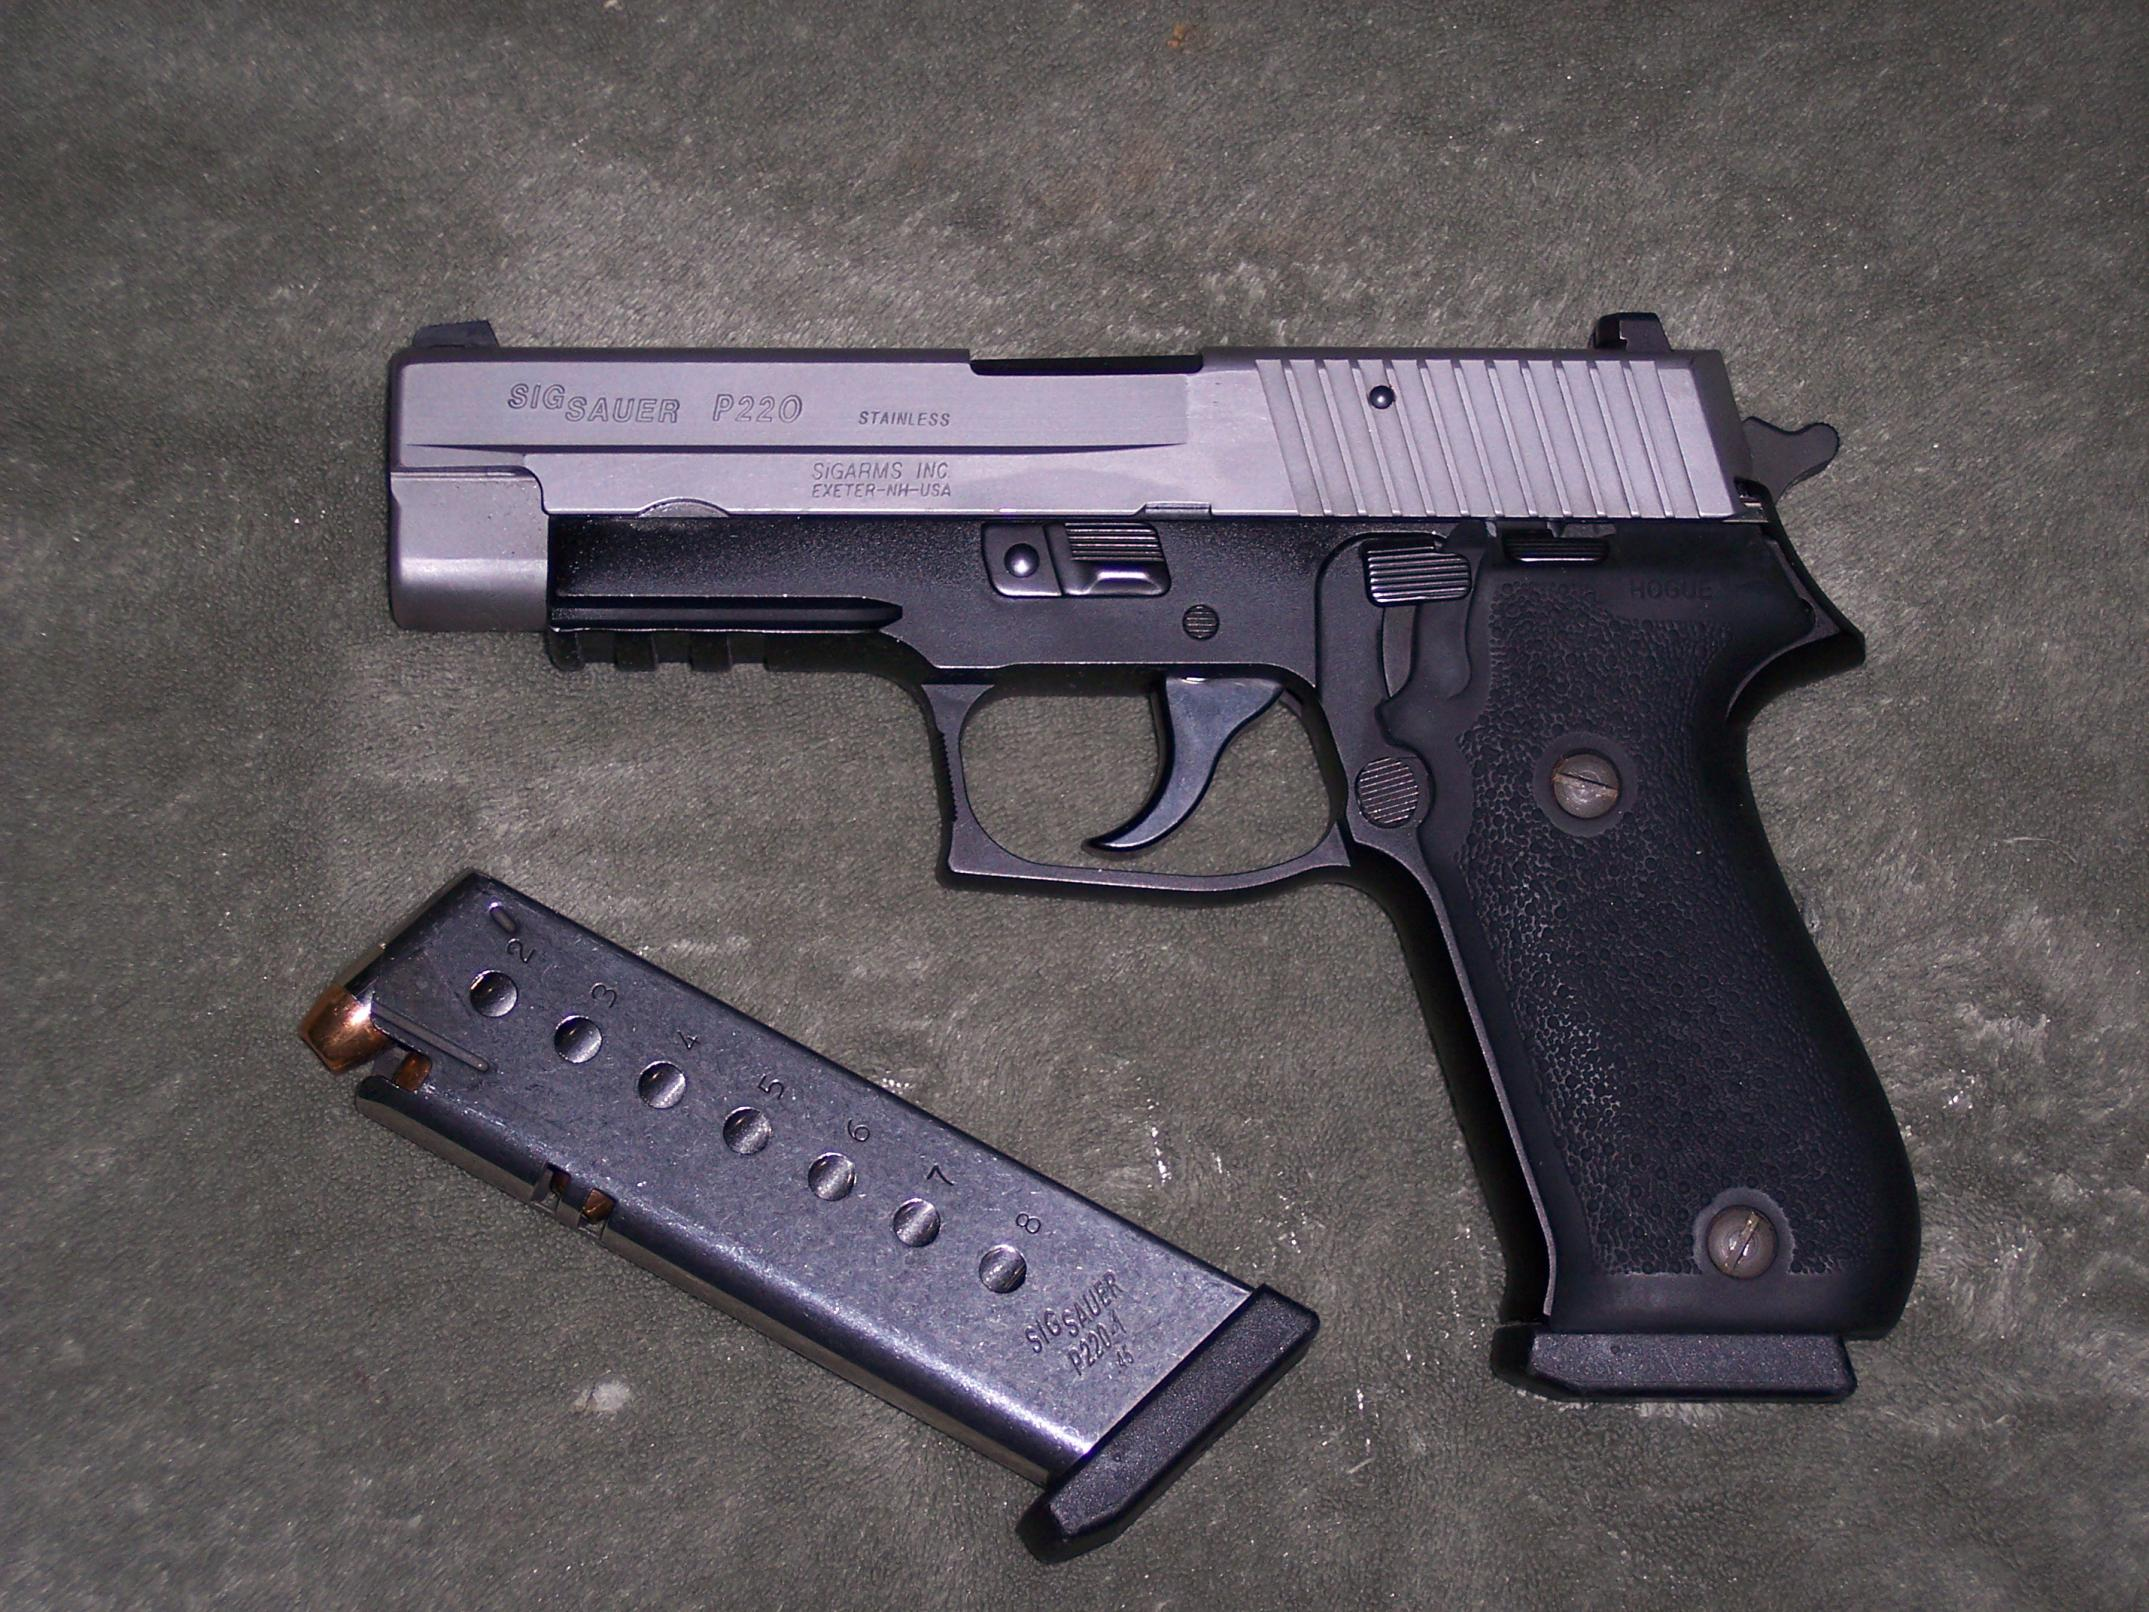 Let's see some pictures of your favorite 45's!-guns-008.jpg